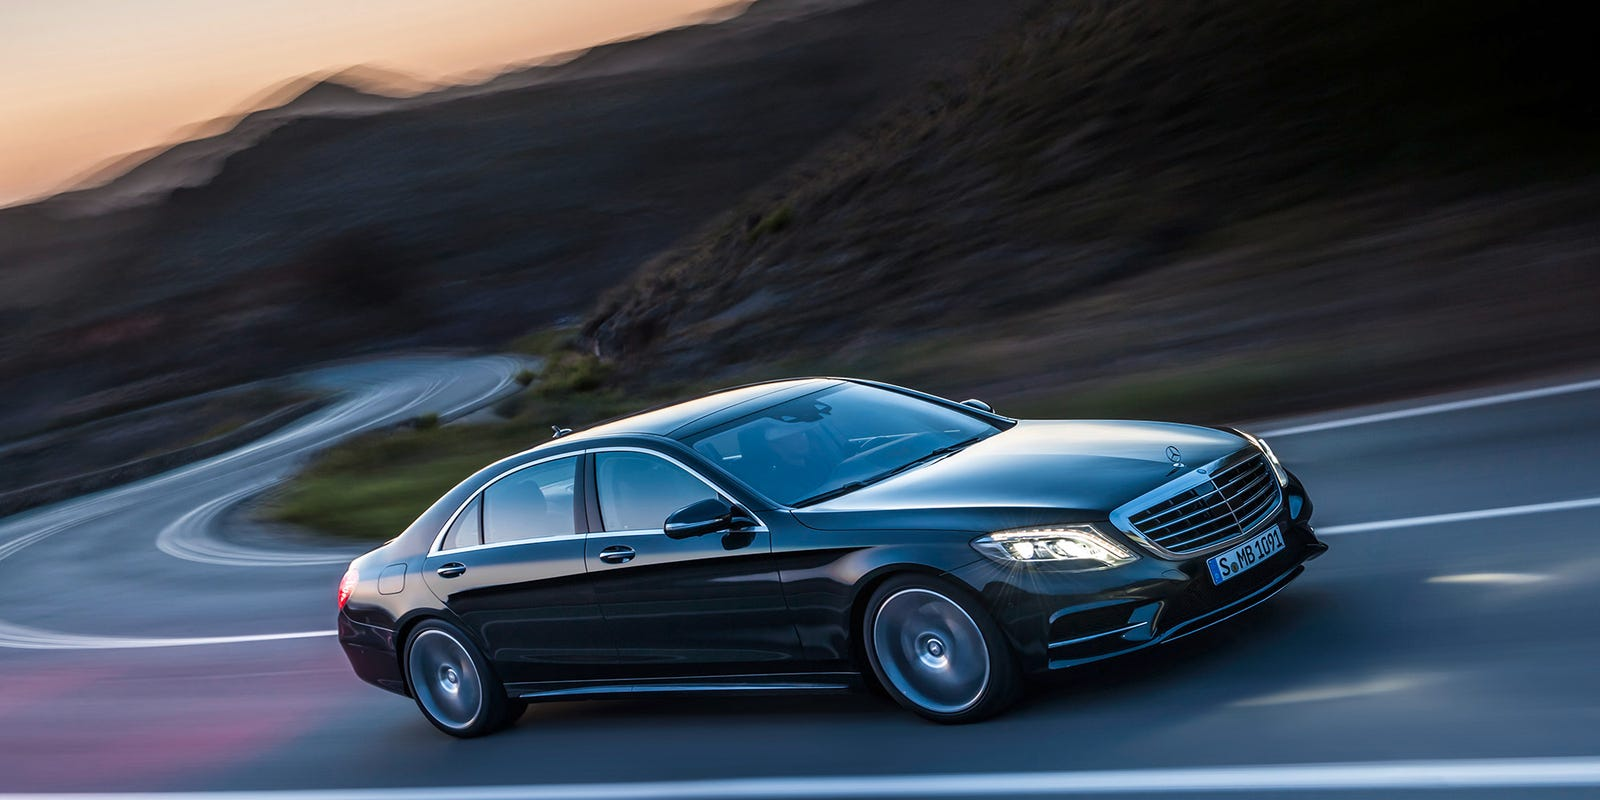 Mercedes-Benz S-Class lives up to high price